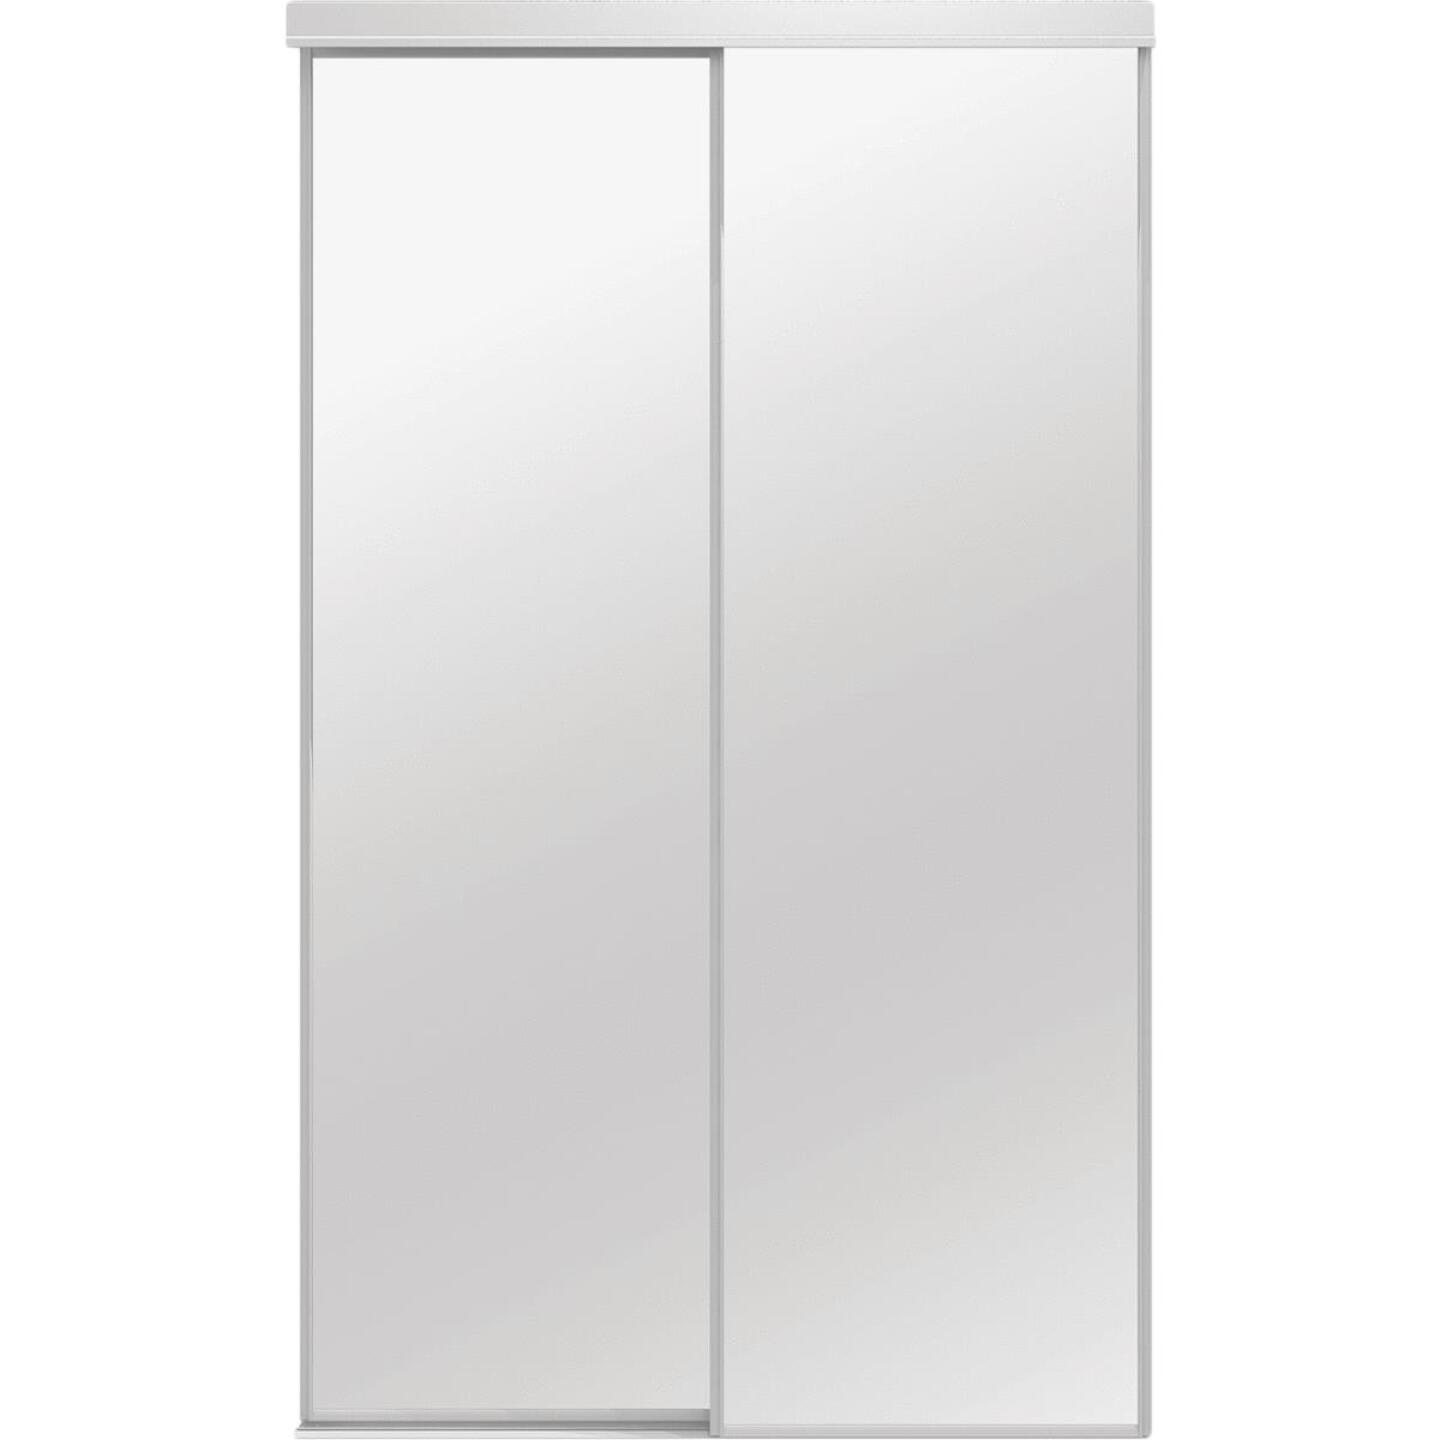 Colonial Elegance Classic 72 In. W x 80-1/2 In. H White Framed Mirrored Sliding Bypass Door Image 1